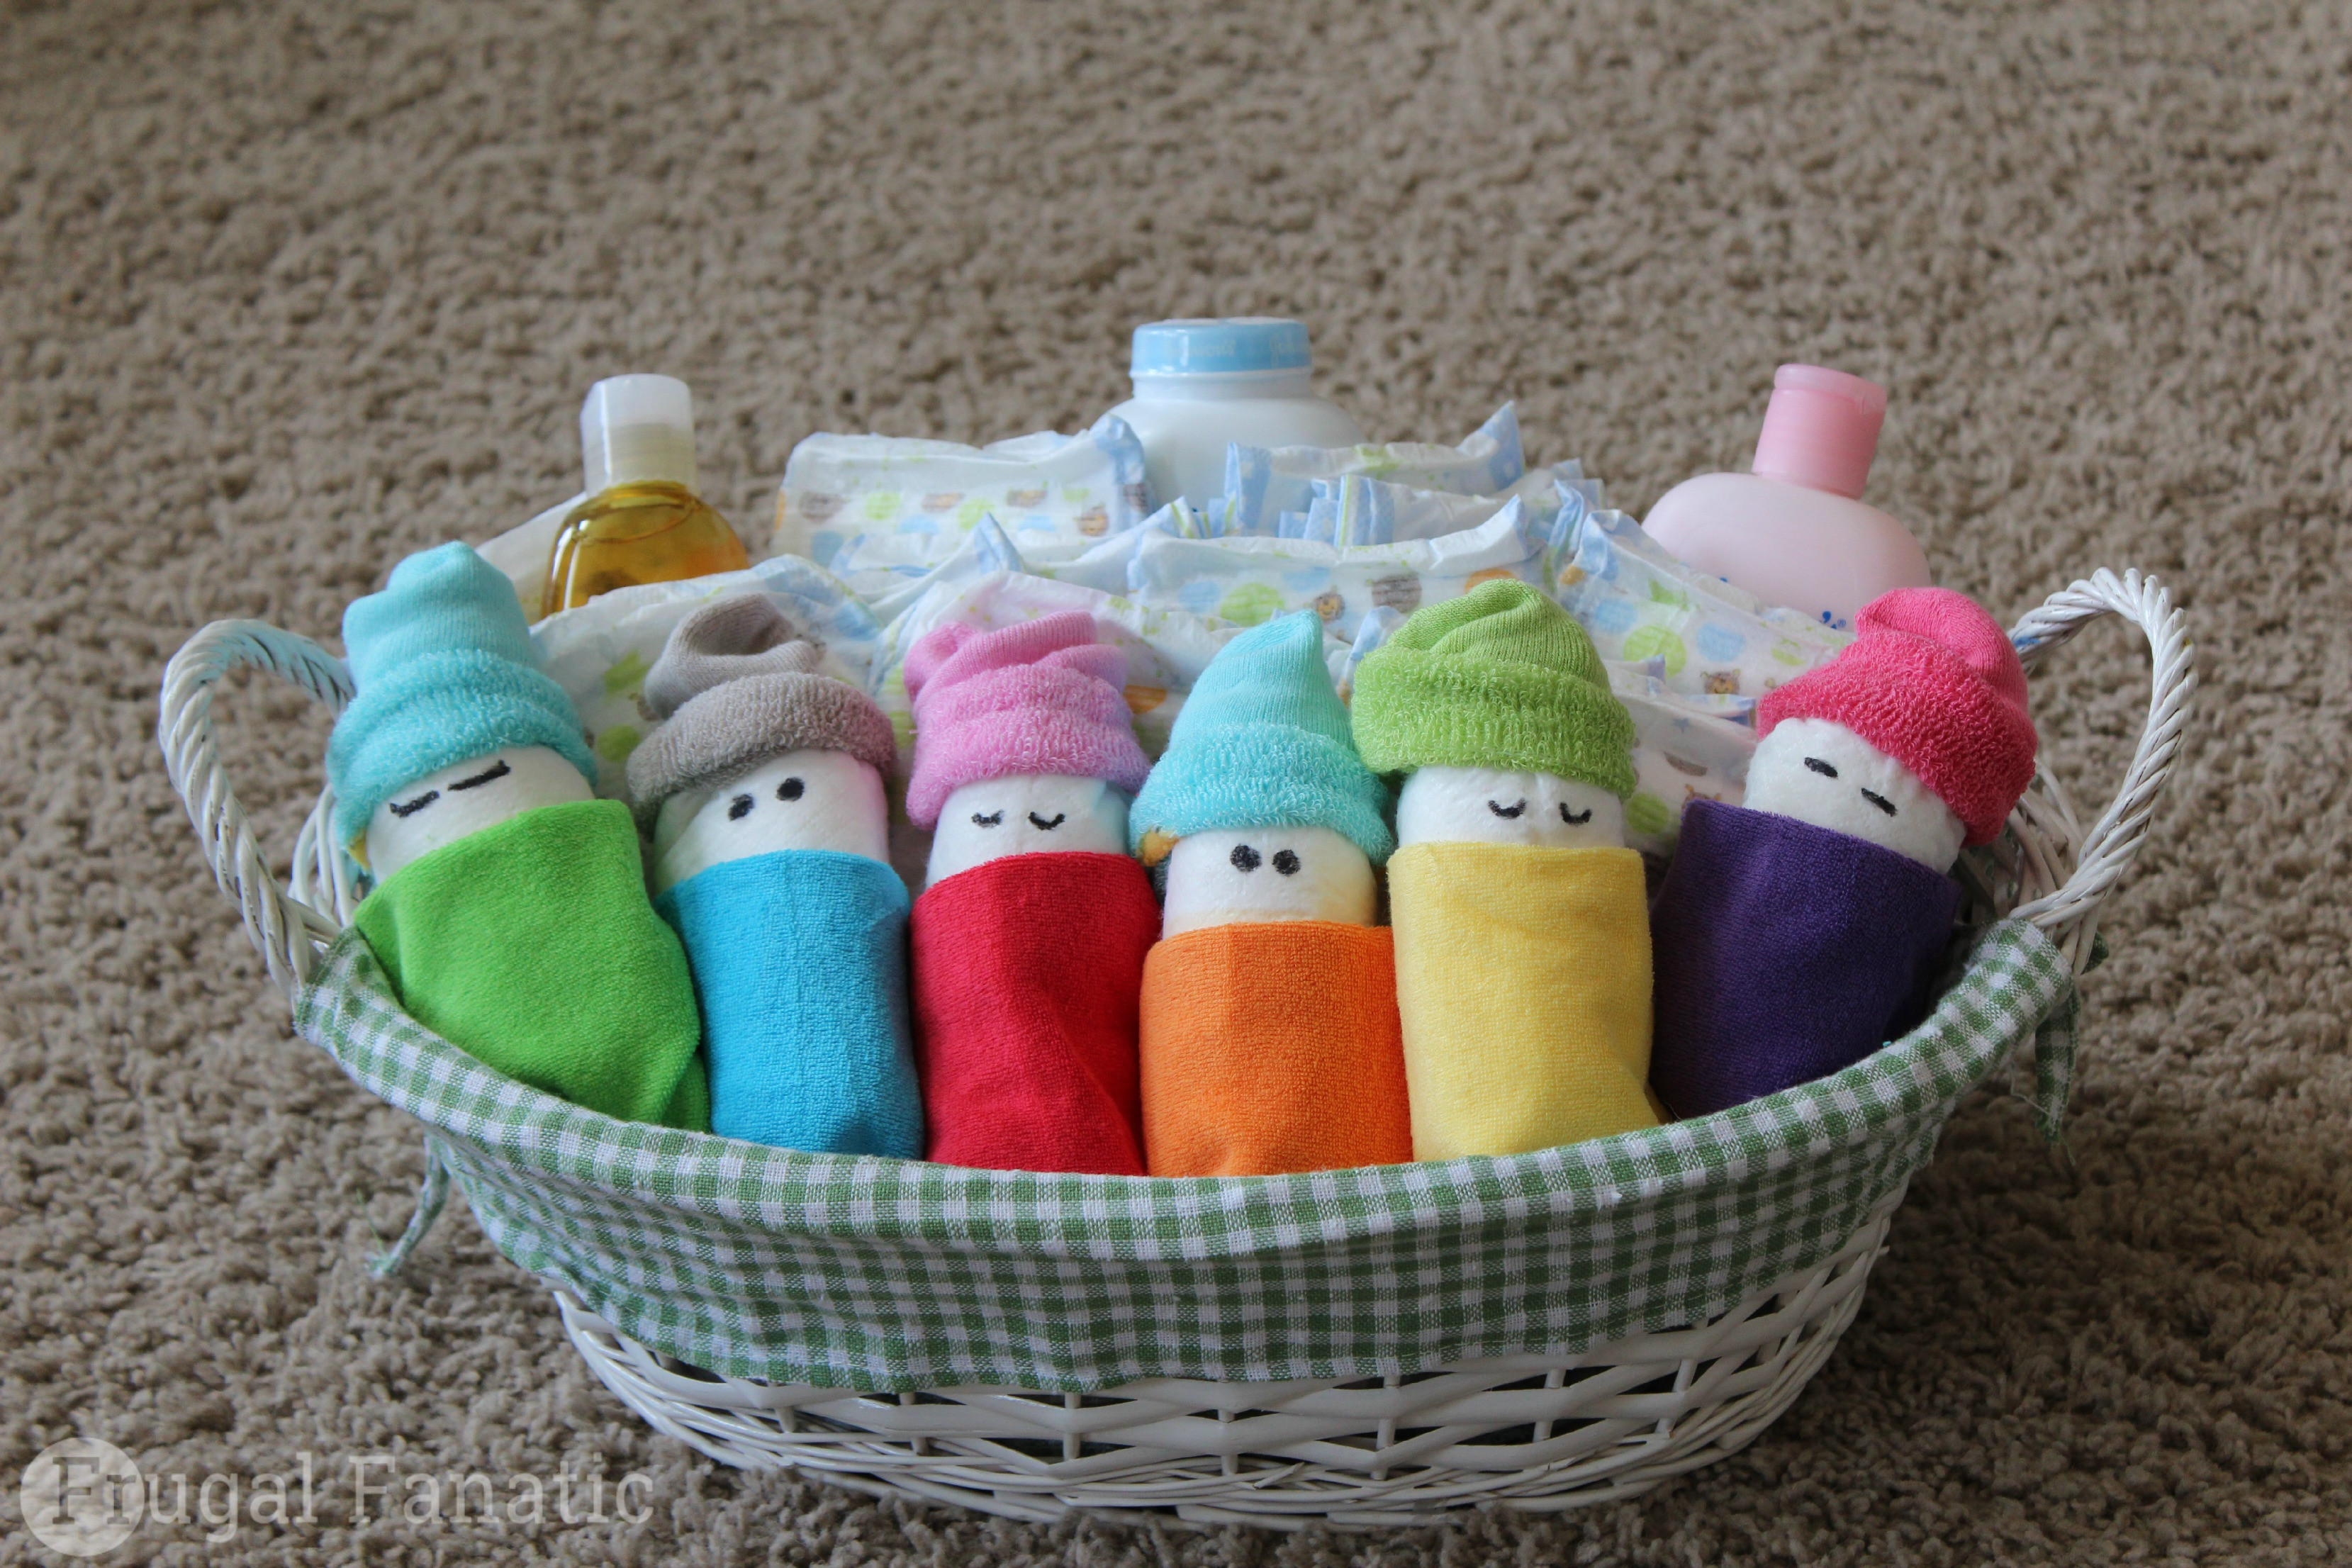 Best ideas about Babyshower Gift Ideas . Save or Pin DIY Baby Gift Ideas Food ts and more Now.